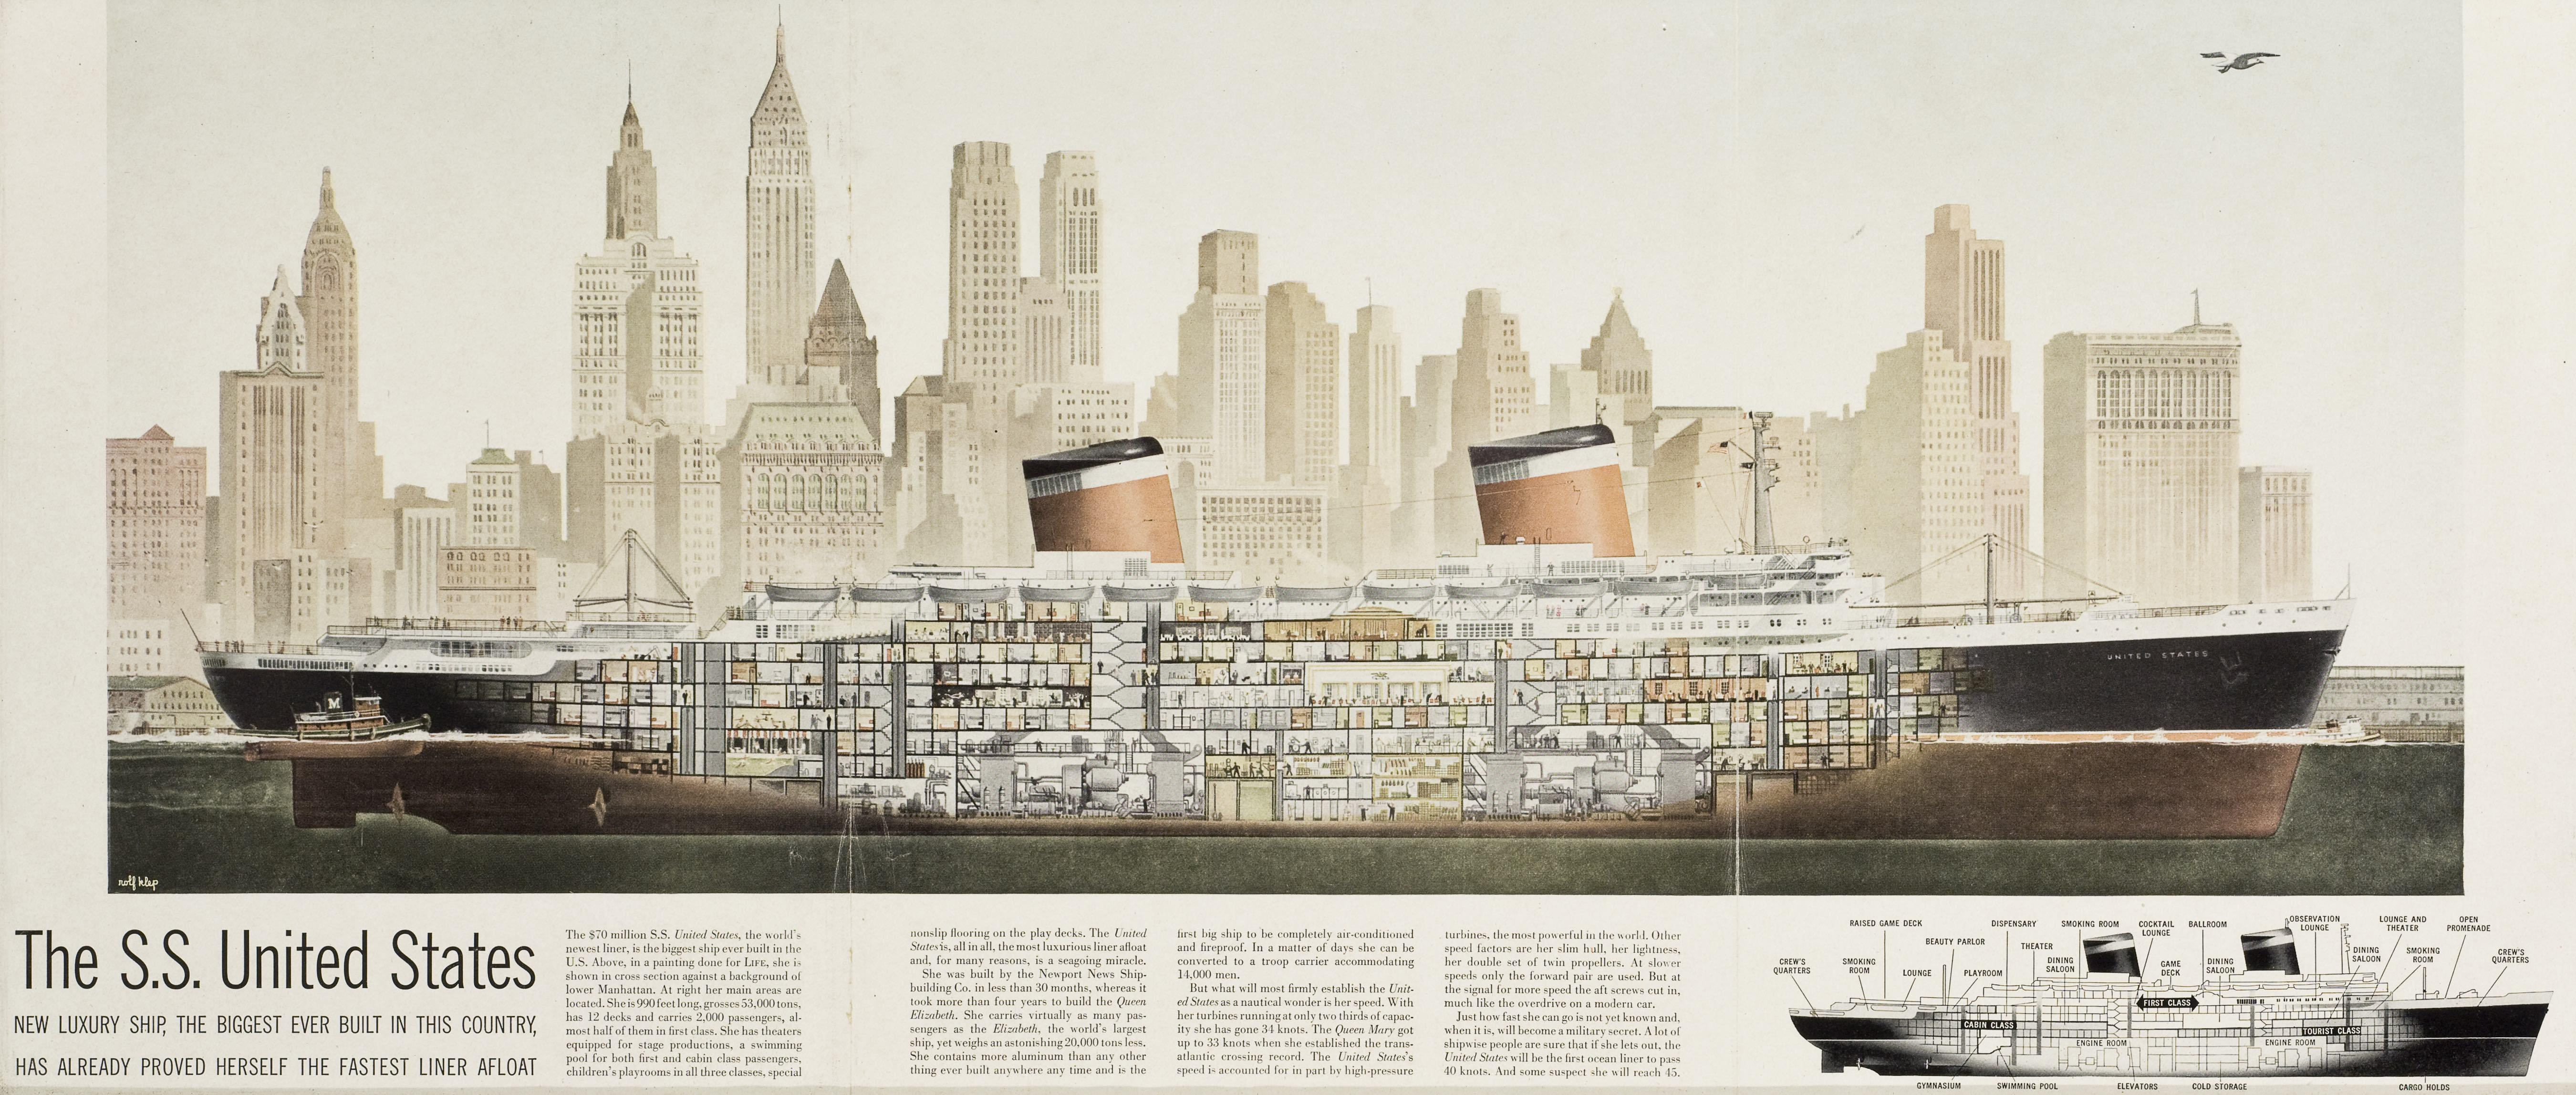 Cutaway view of SS United States